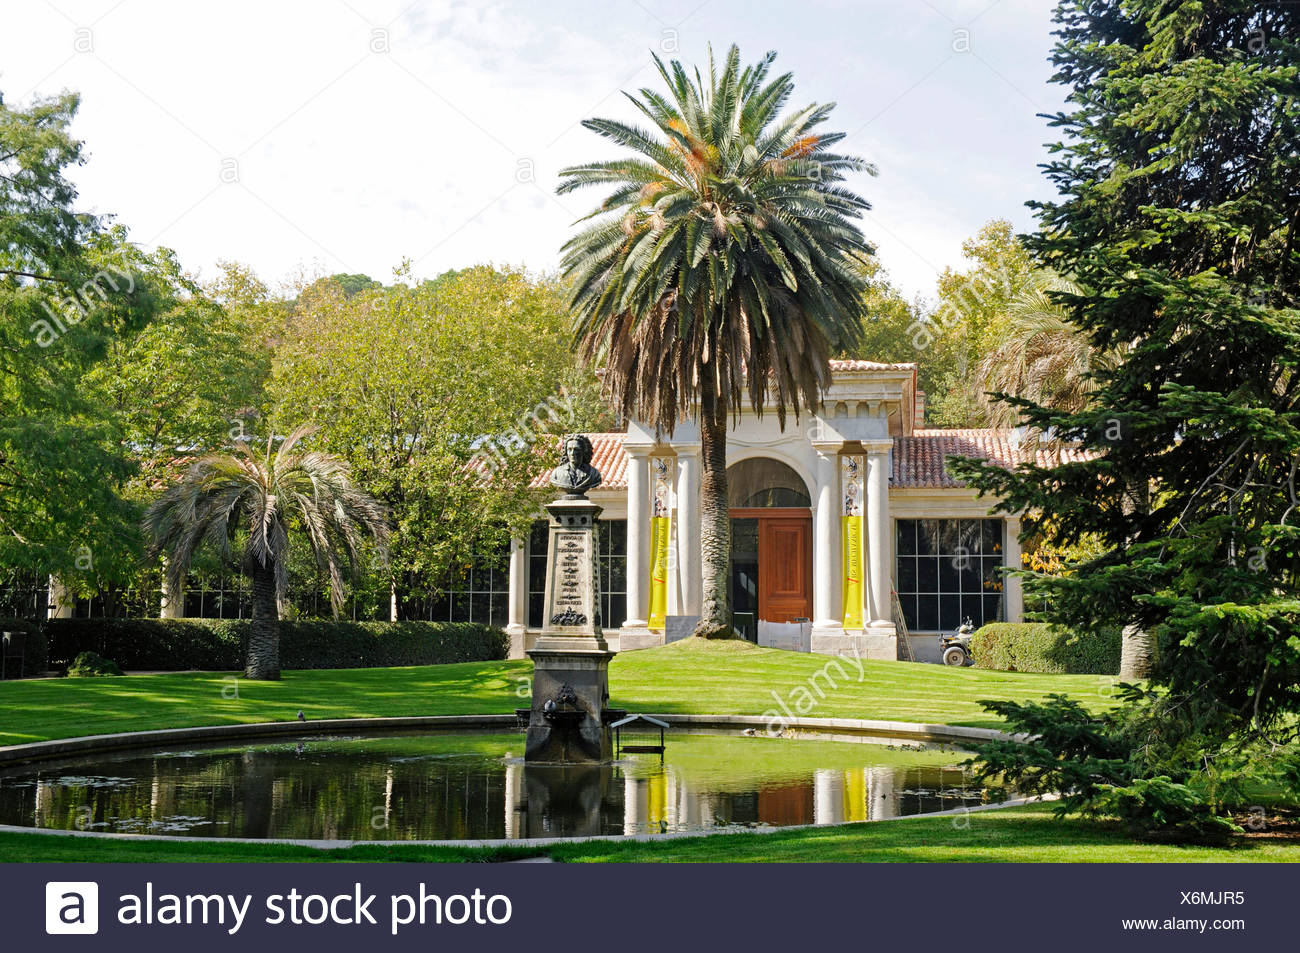 Villanueva stock photos villanueva stock images alamy for Precio entrada jardin botanico madrid